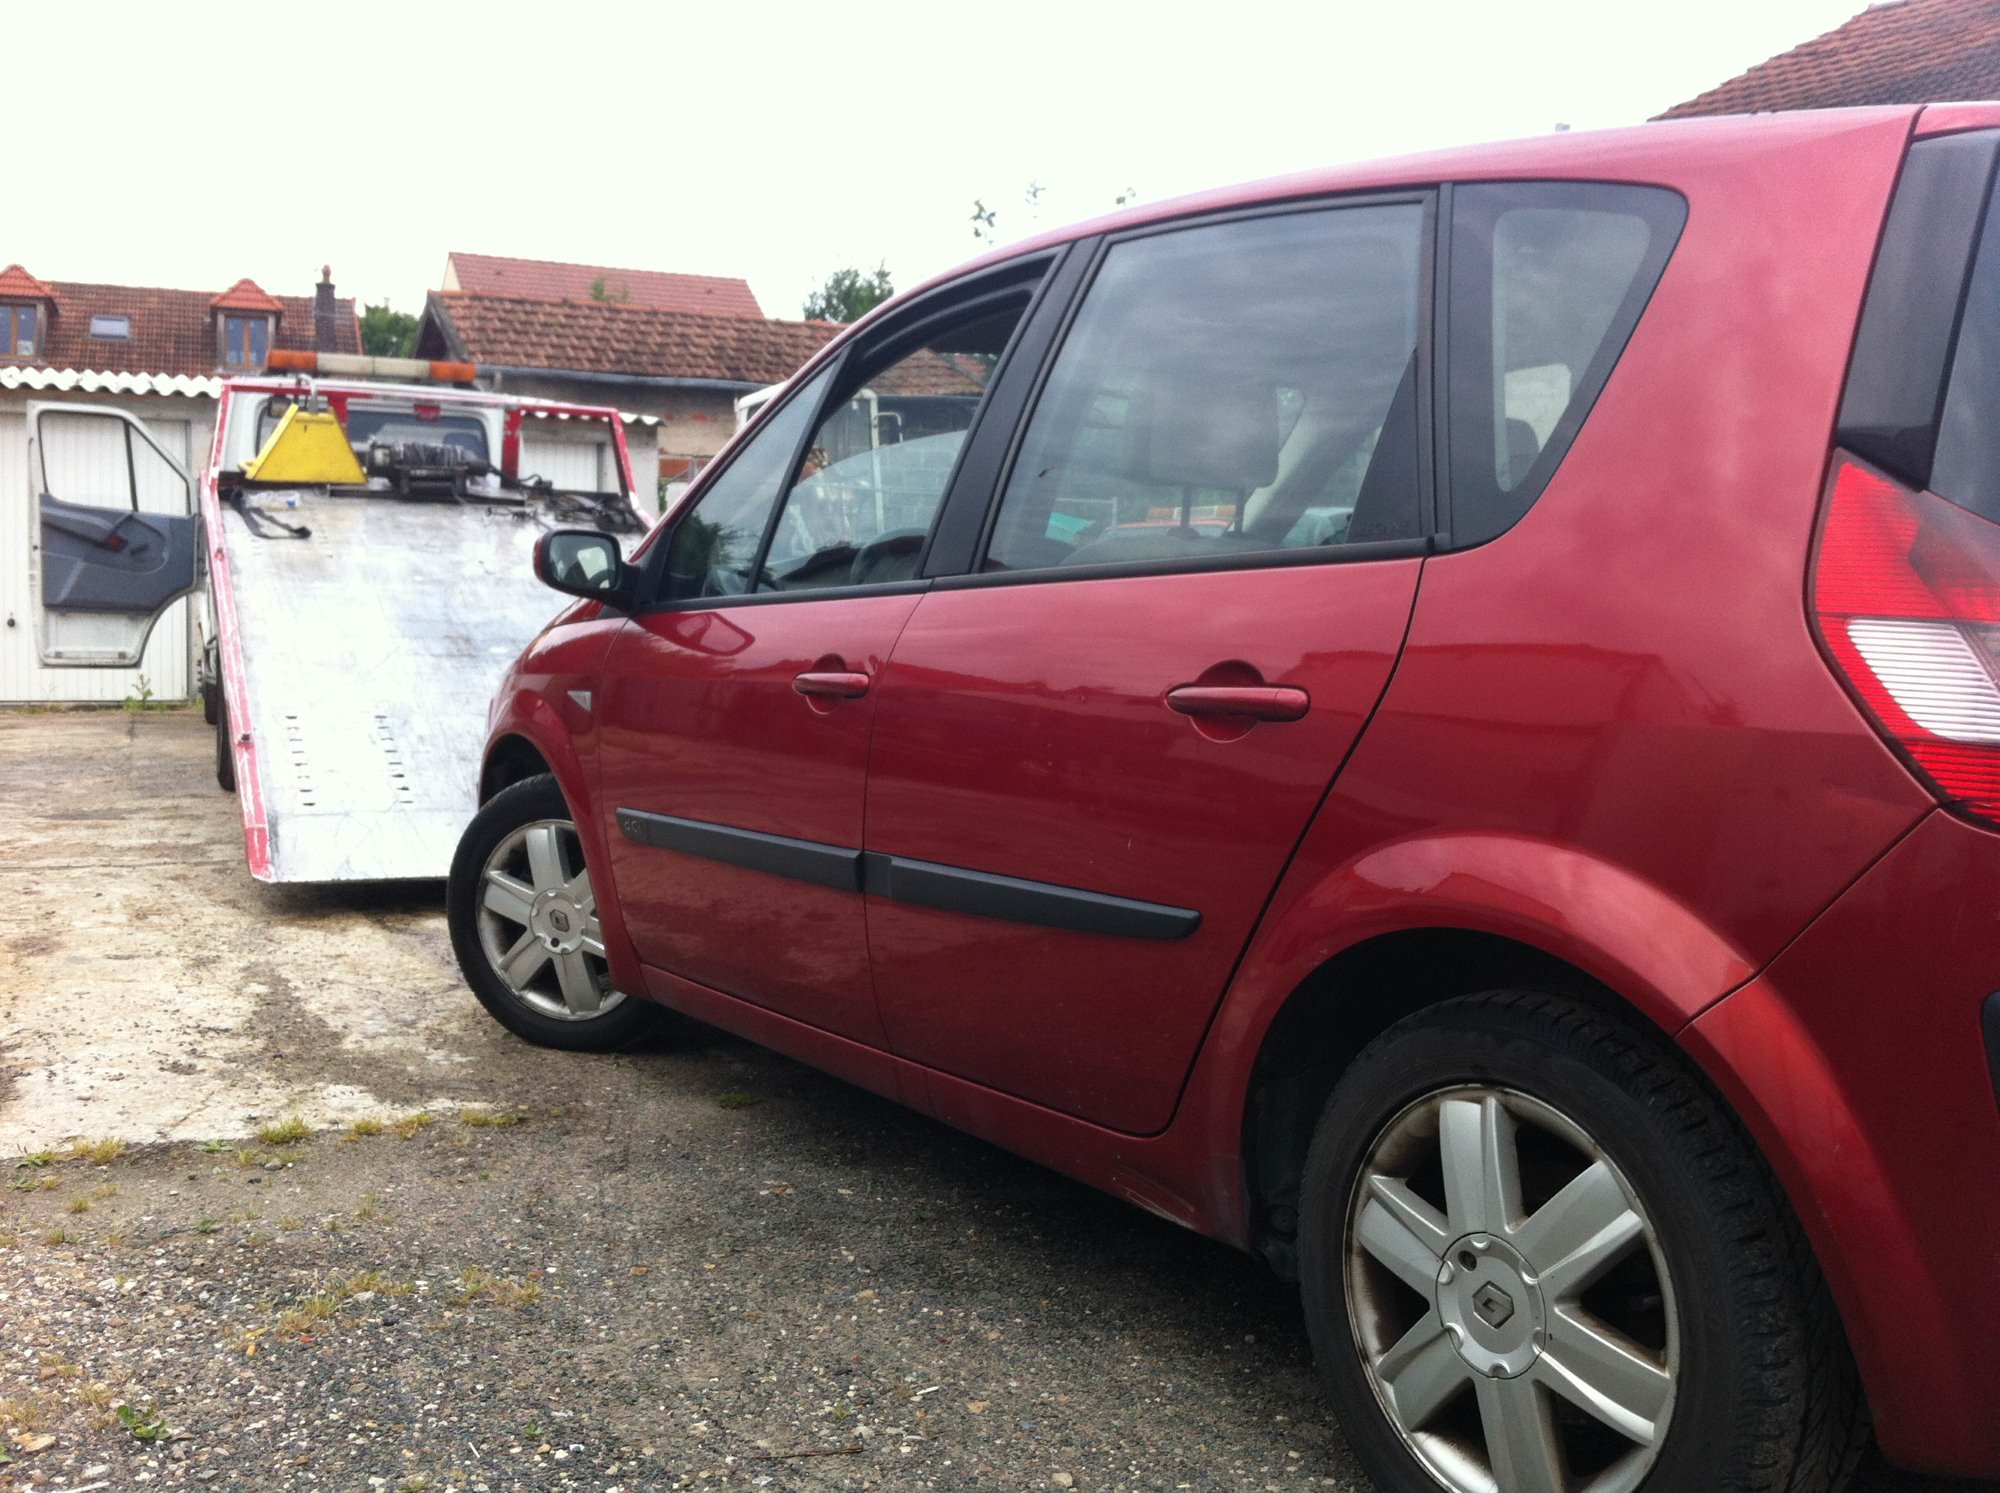 remorquage epave voiture camion scooter panne accidentee gagee hs brulee colombes